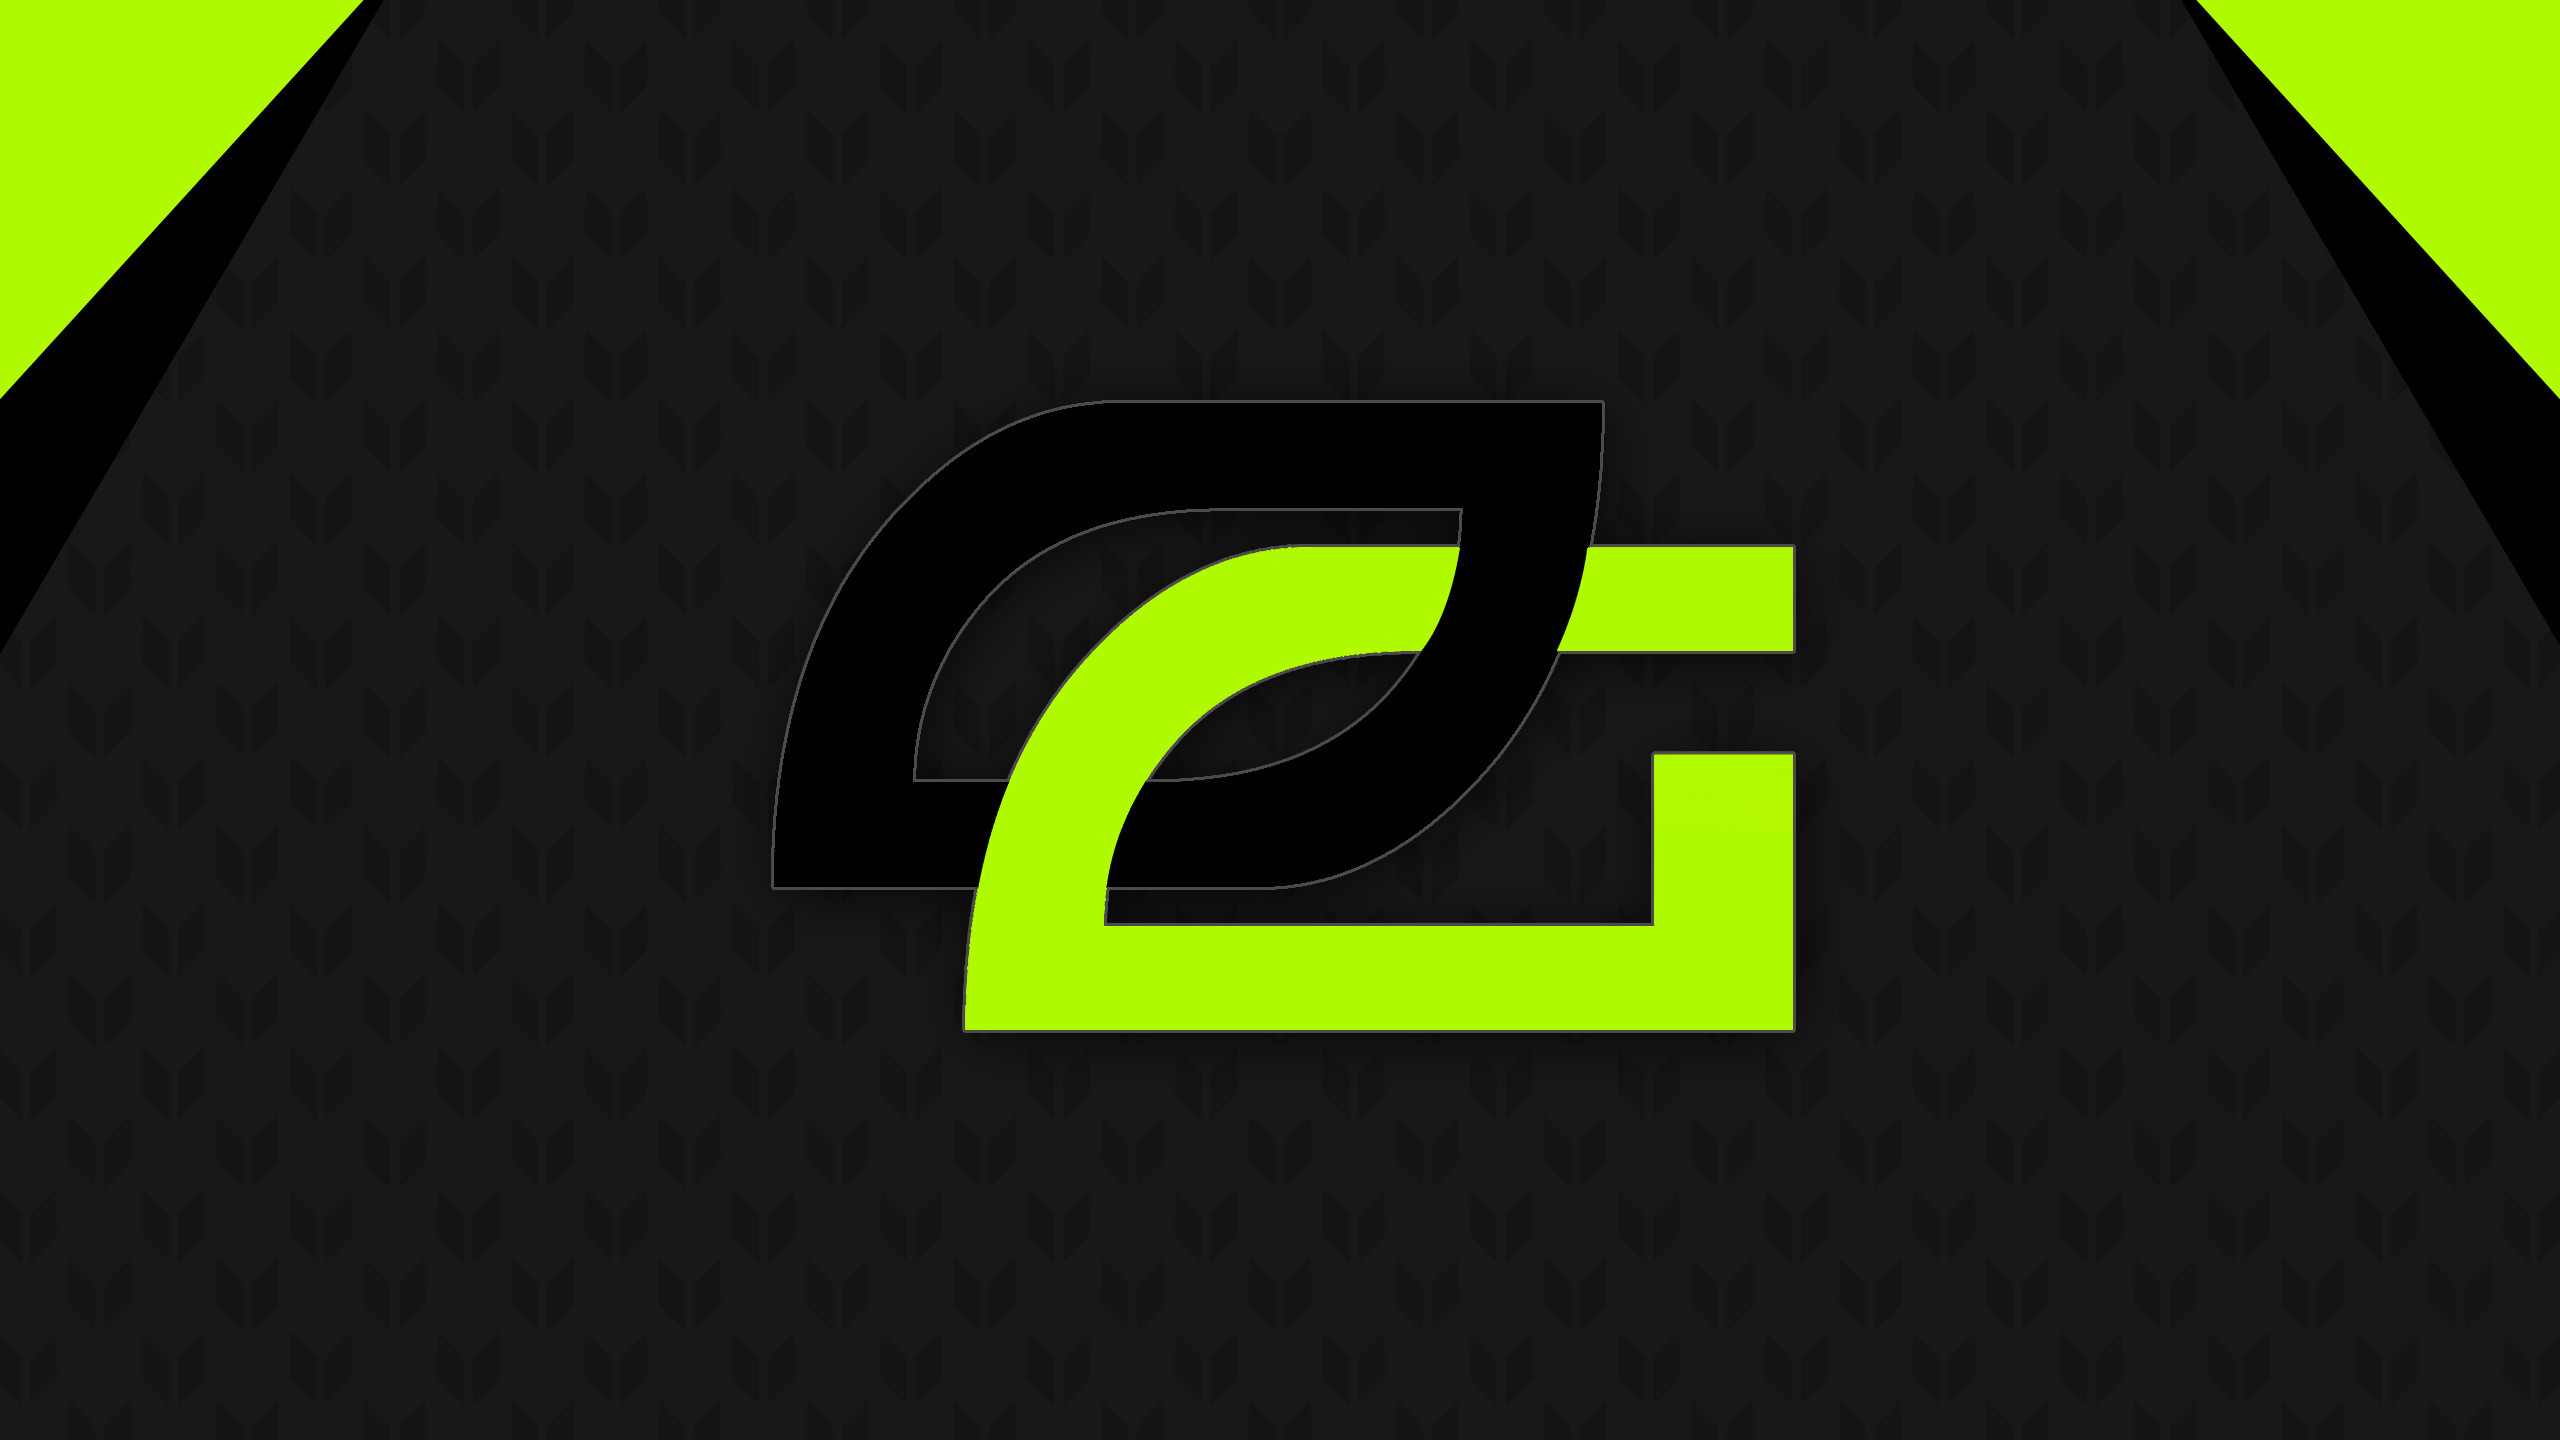 2560x1440 Optic Wallpaper Inspired by the Optic Banner : OpTicGaming